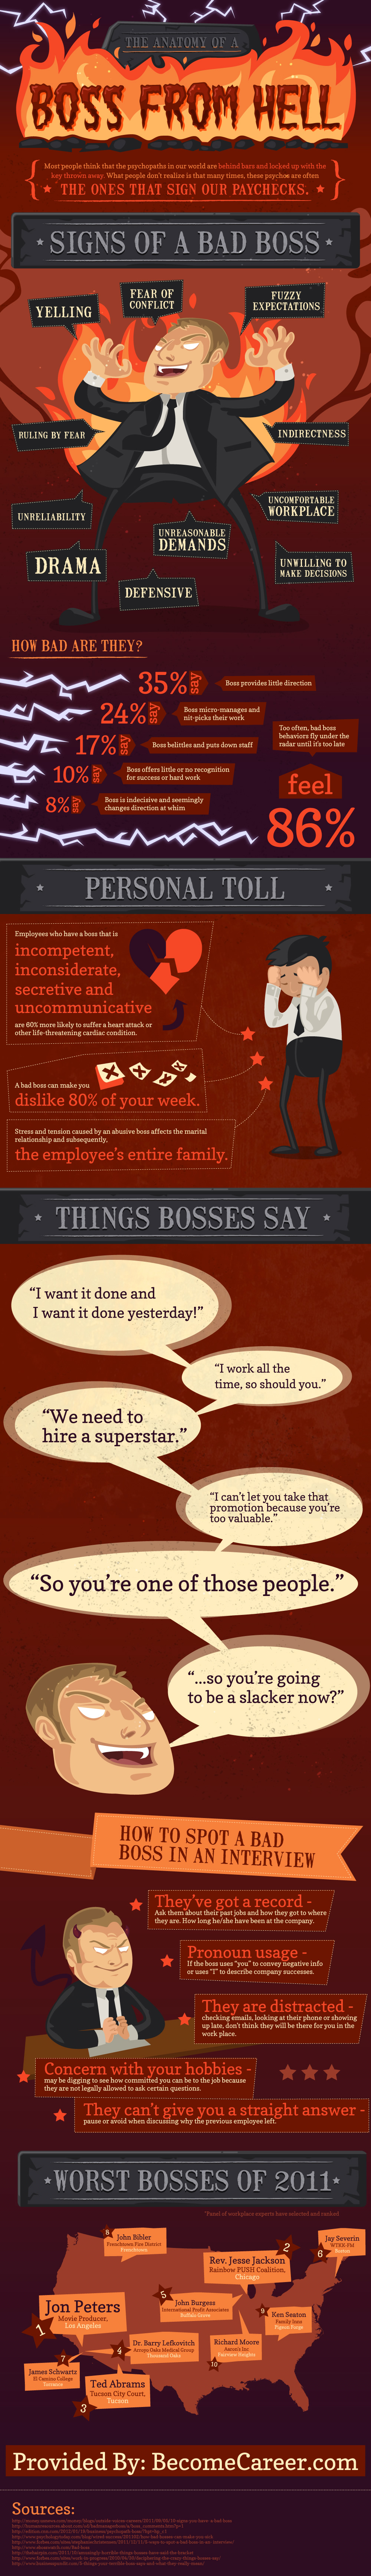 Devil in Disguise: All About Hellish Bosses - Infographic